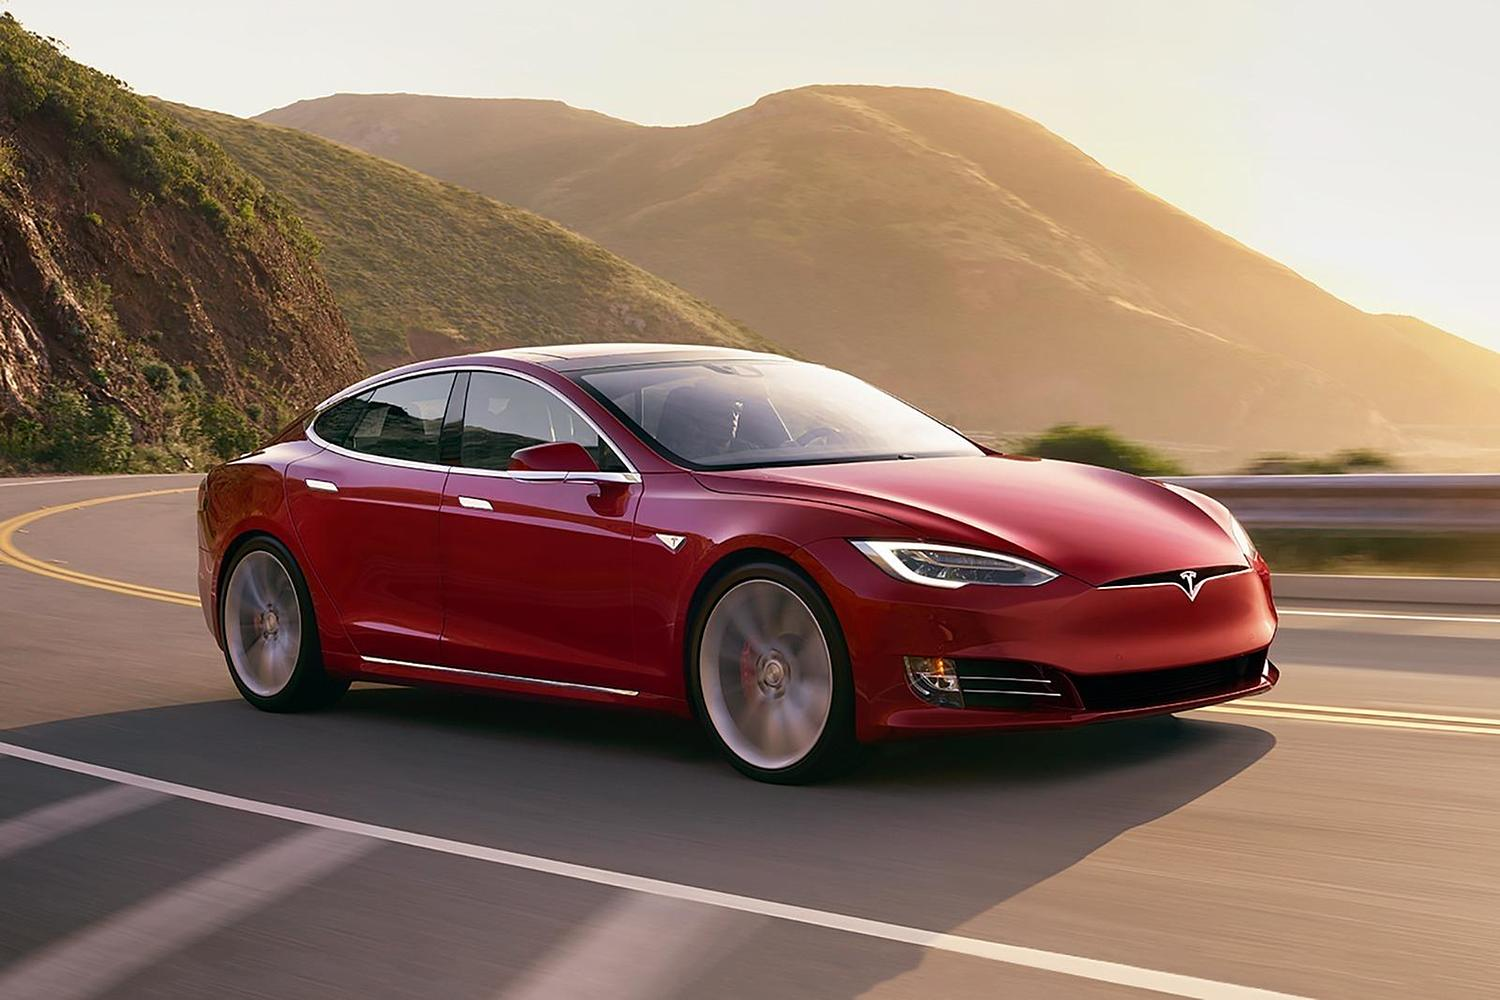 2017 Tesla Model S P100D Sedan Exterior Shown